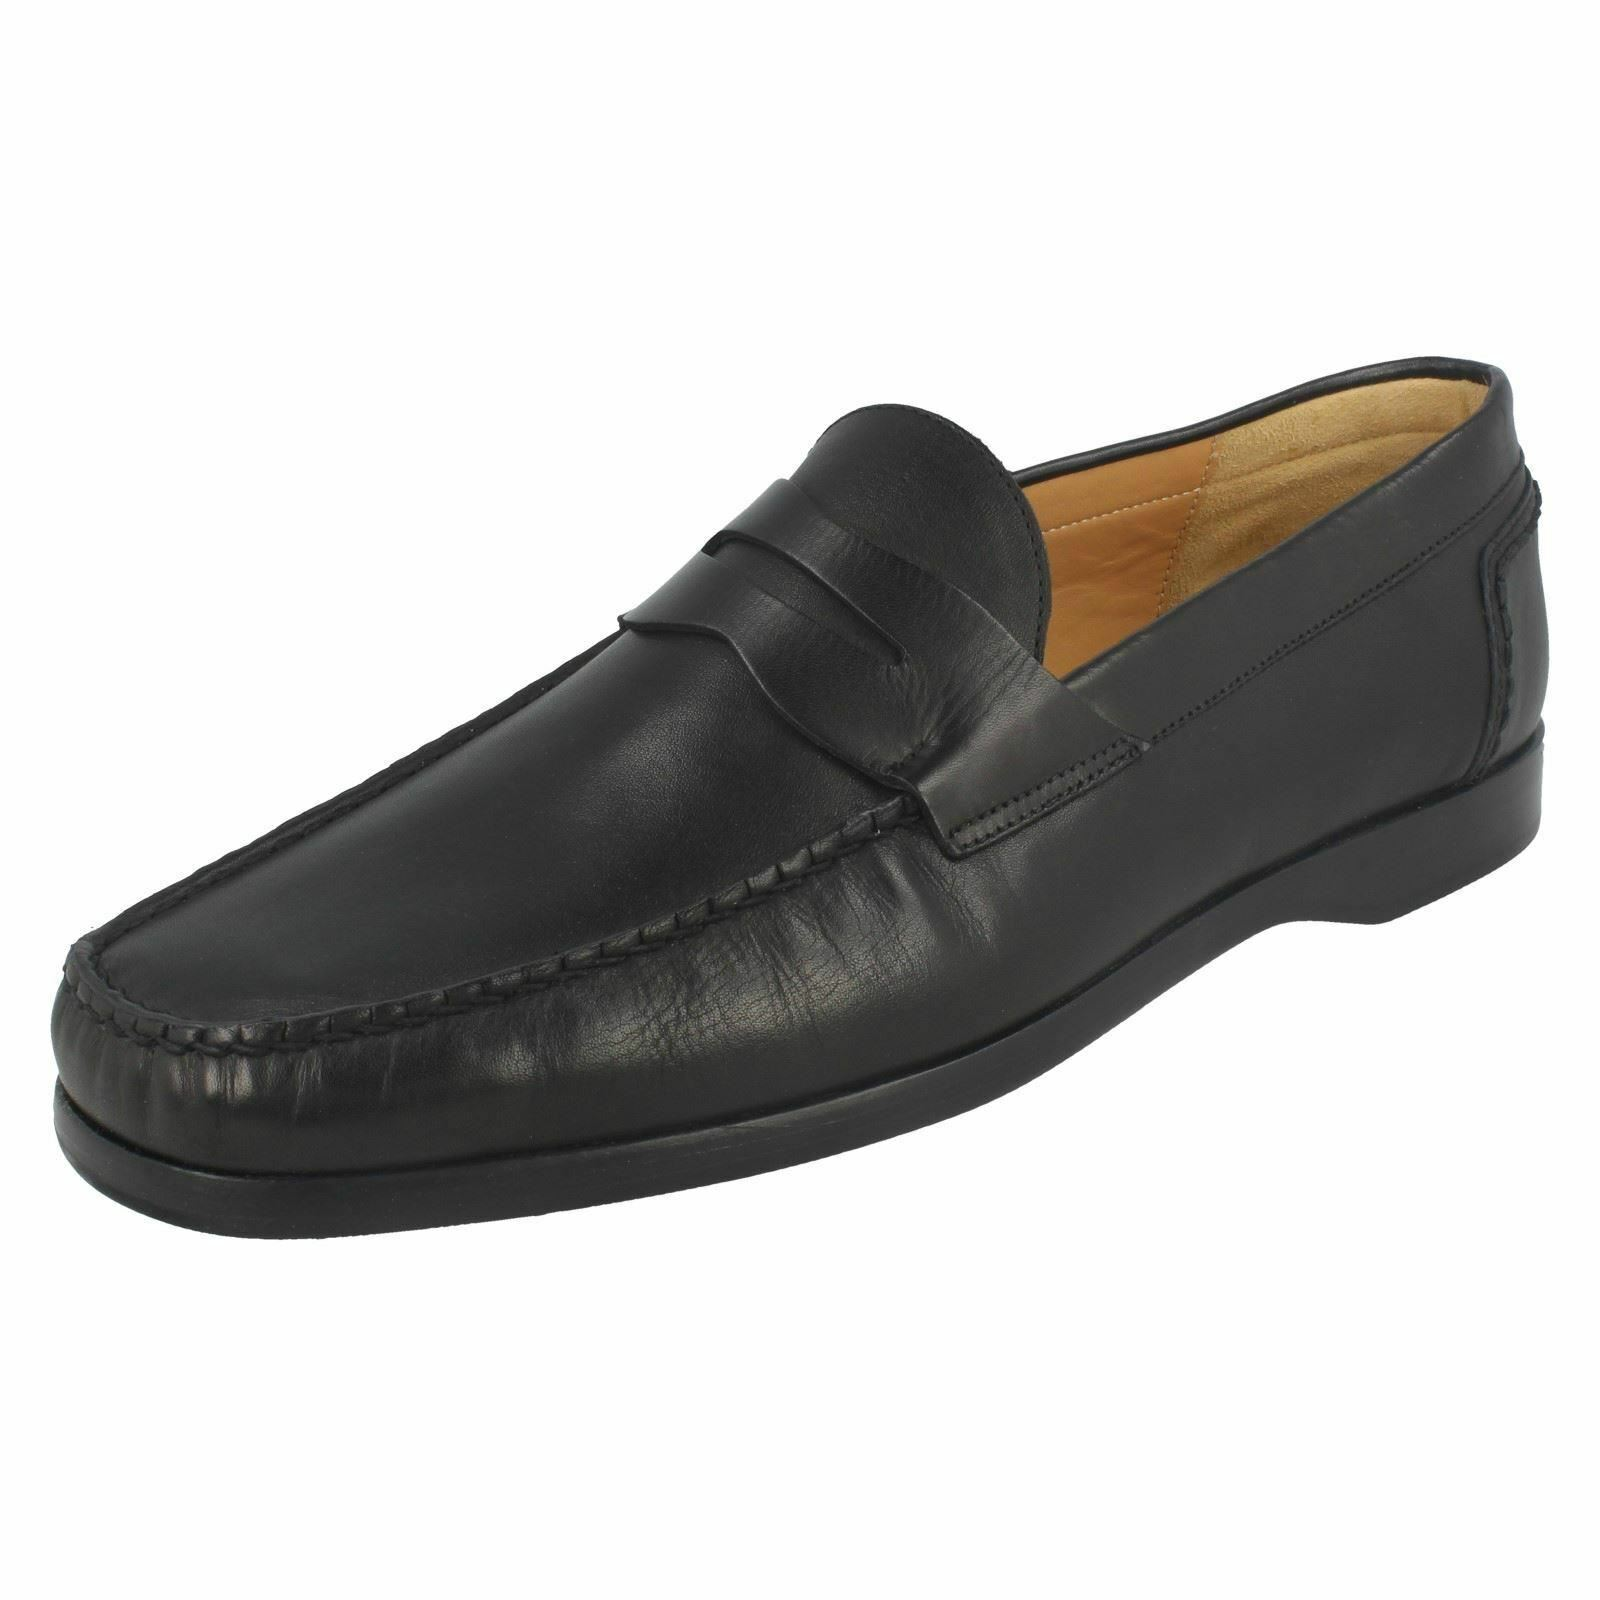 Mens Grenson Slip On shoes 'Newport'